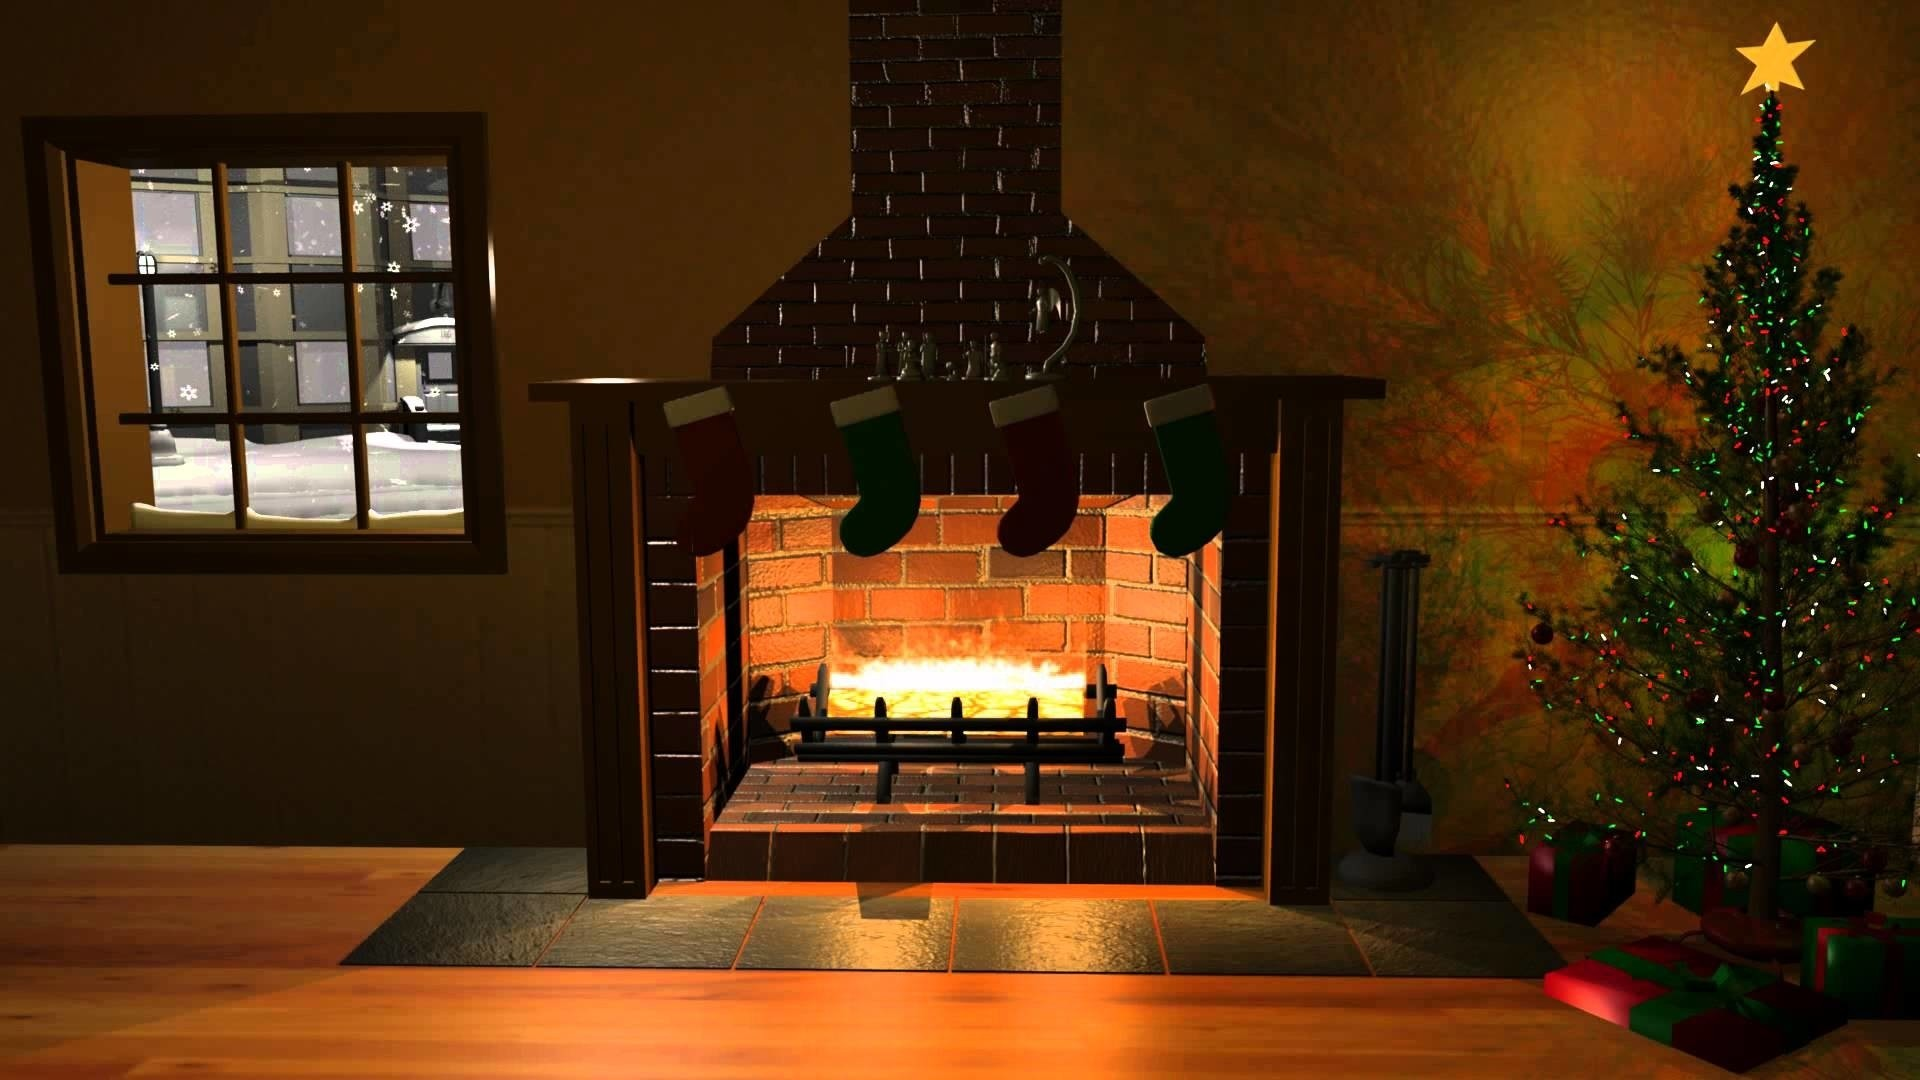 Fireplace Wallpaper and Background